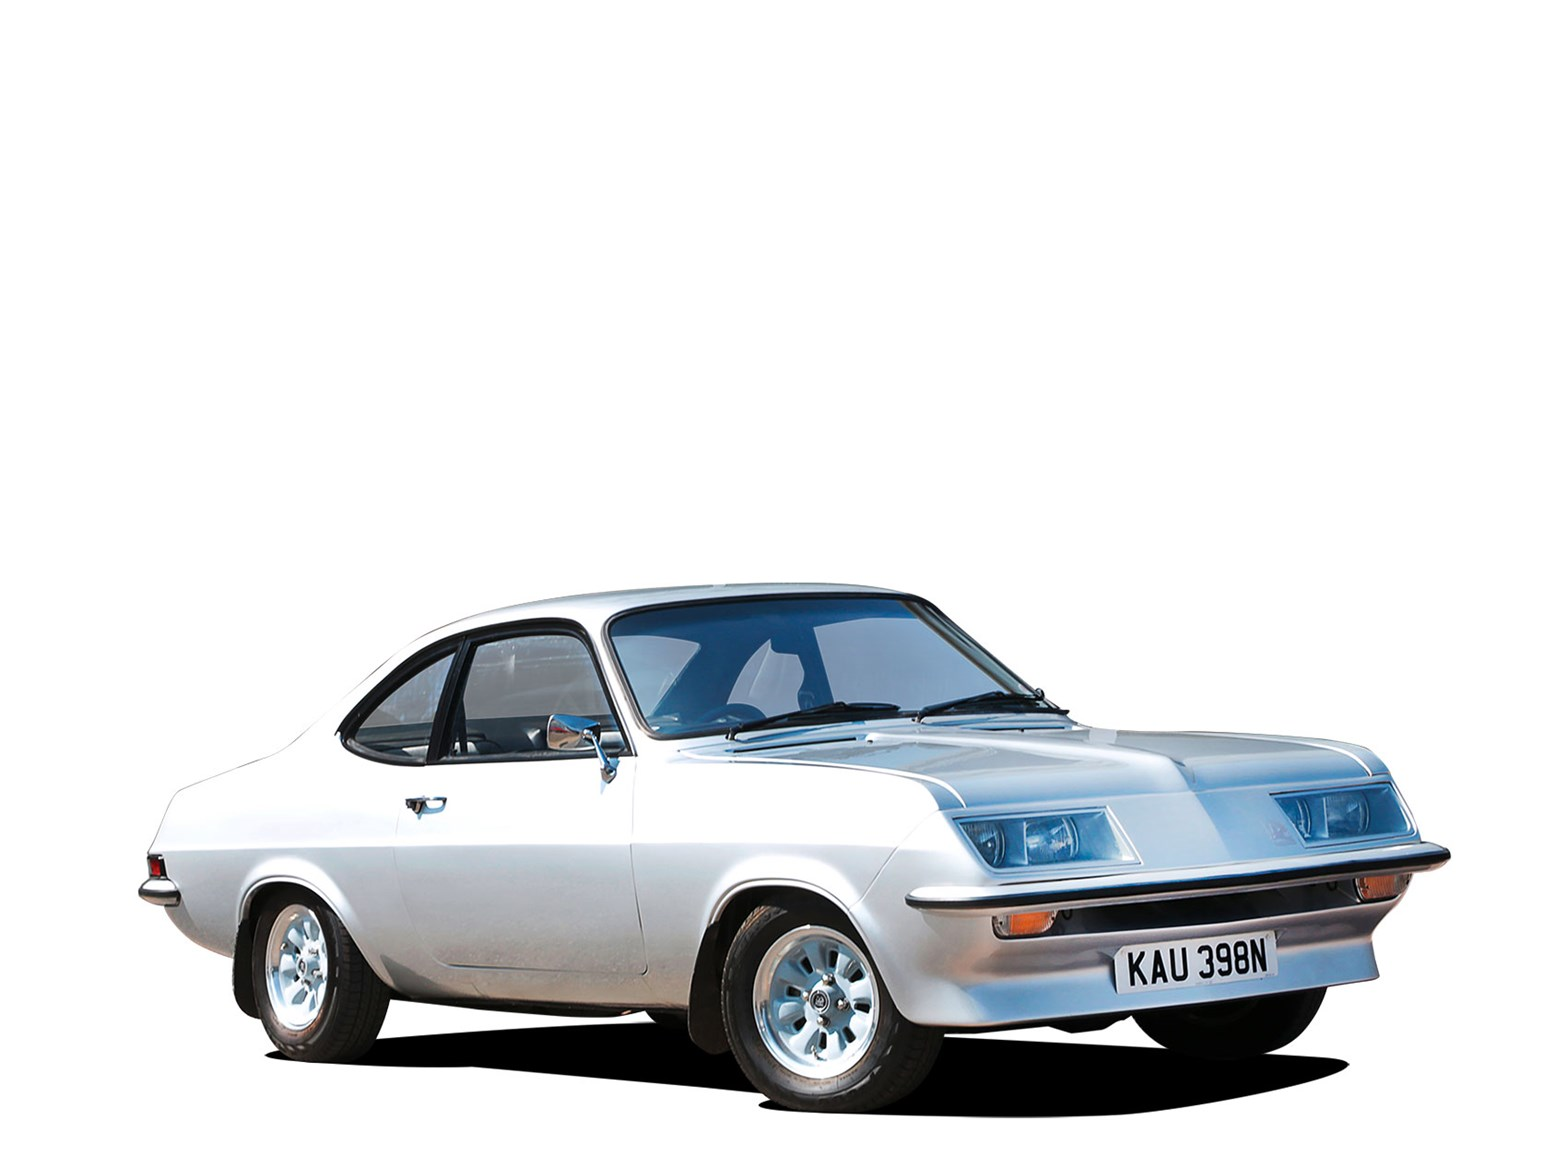 25 british cars to drive before you die 16 17 lotus cortina and lotus carlt. Black Bedroom Furniture Sets. Home Design Ideas